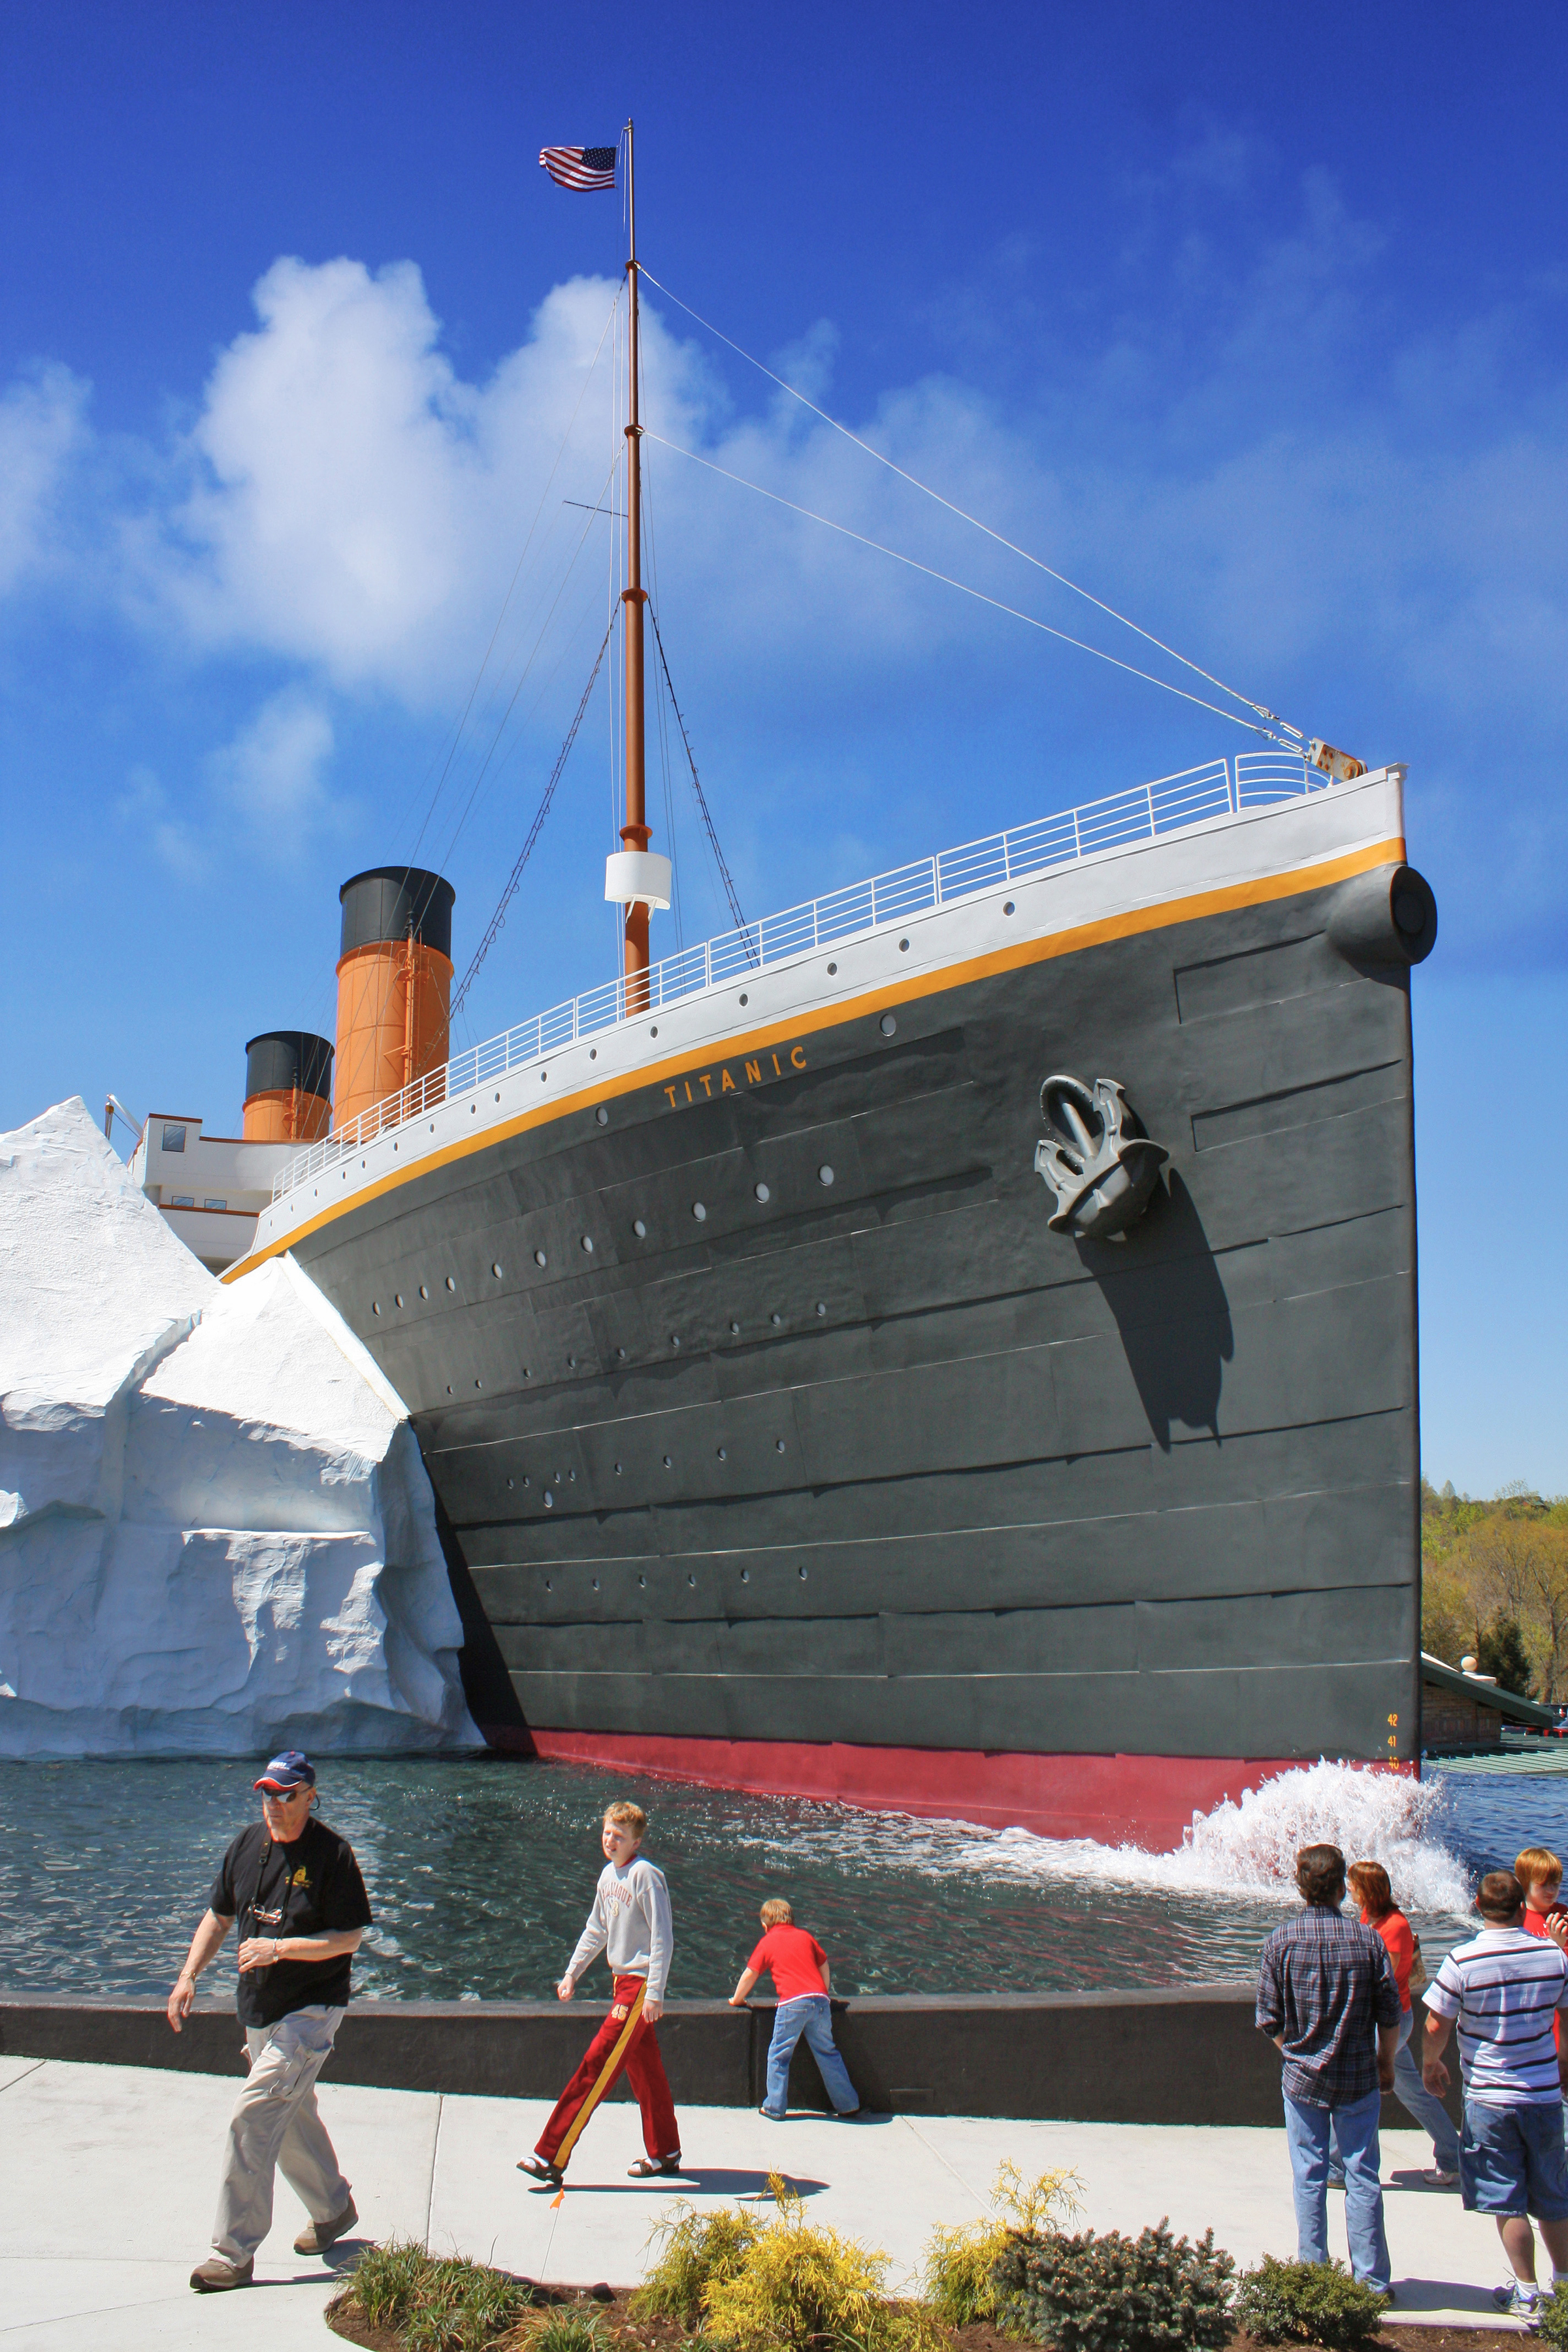 Titanic Museum Attraction at Pigeon Forge